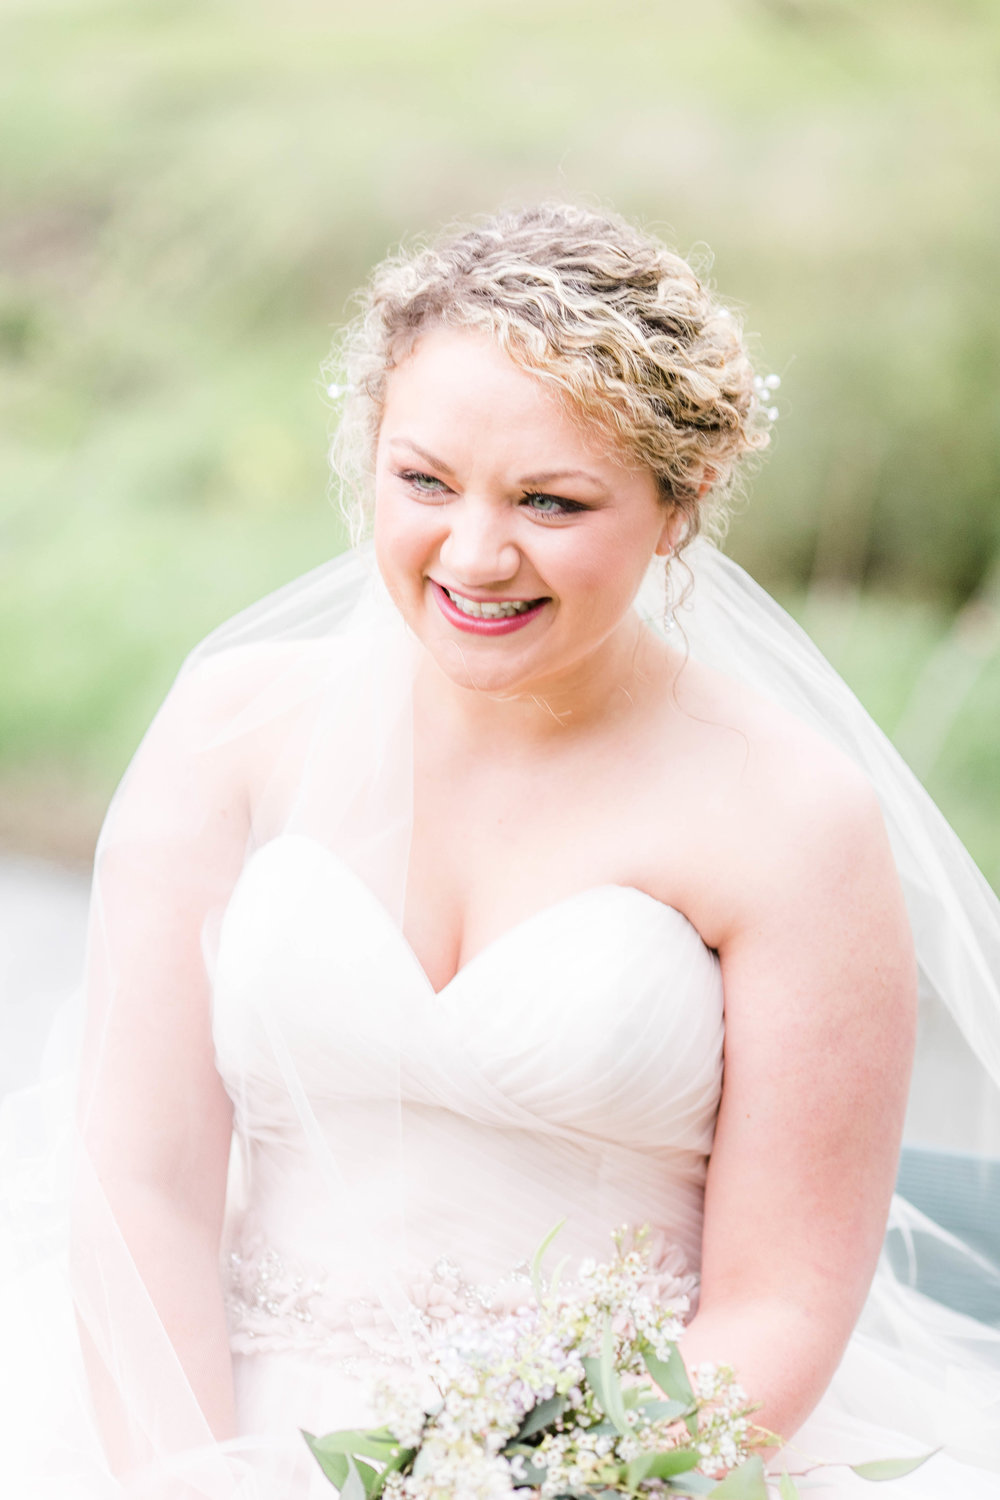 Bridal portrait, happy joyful bride